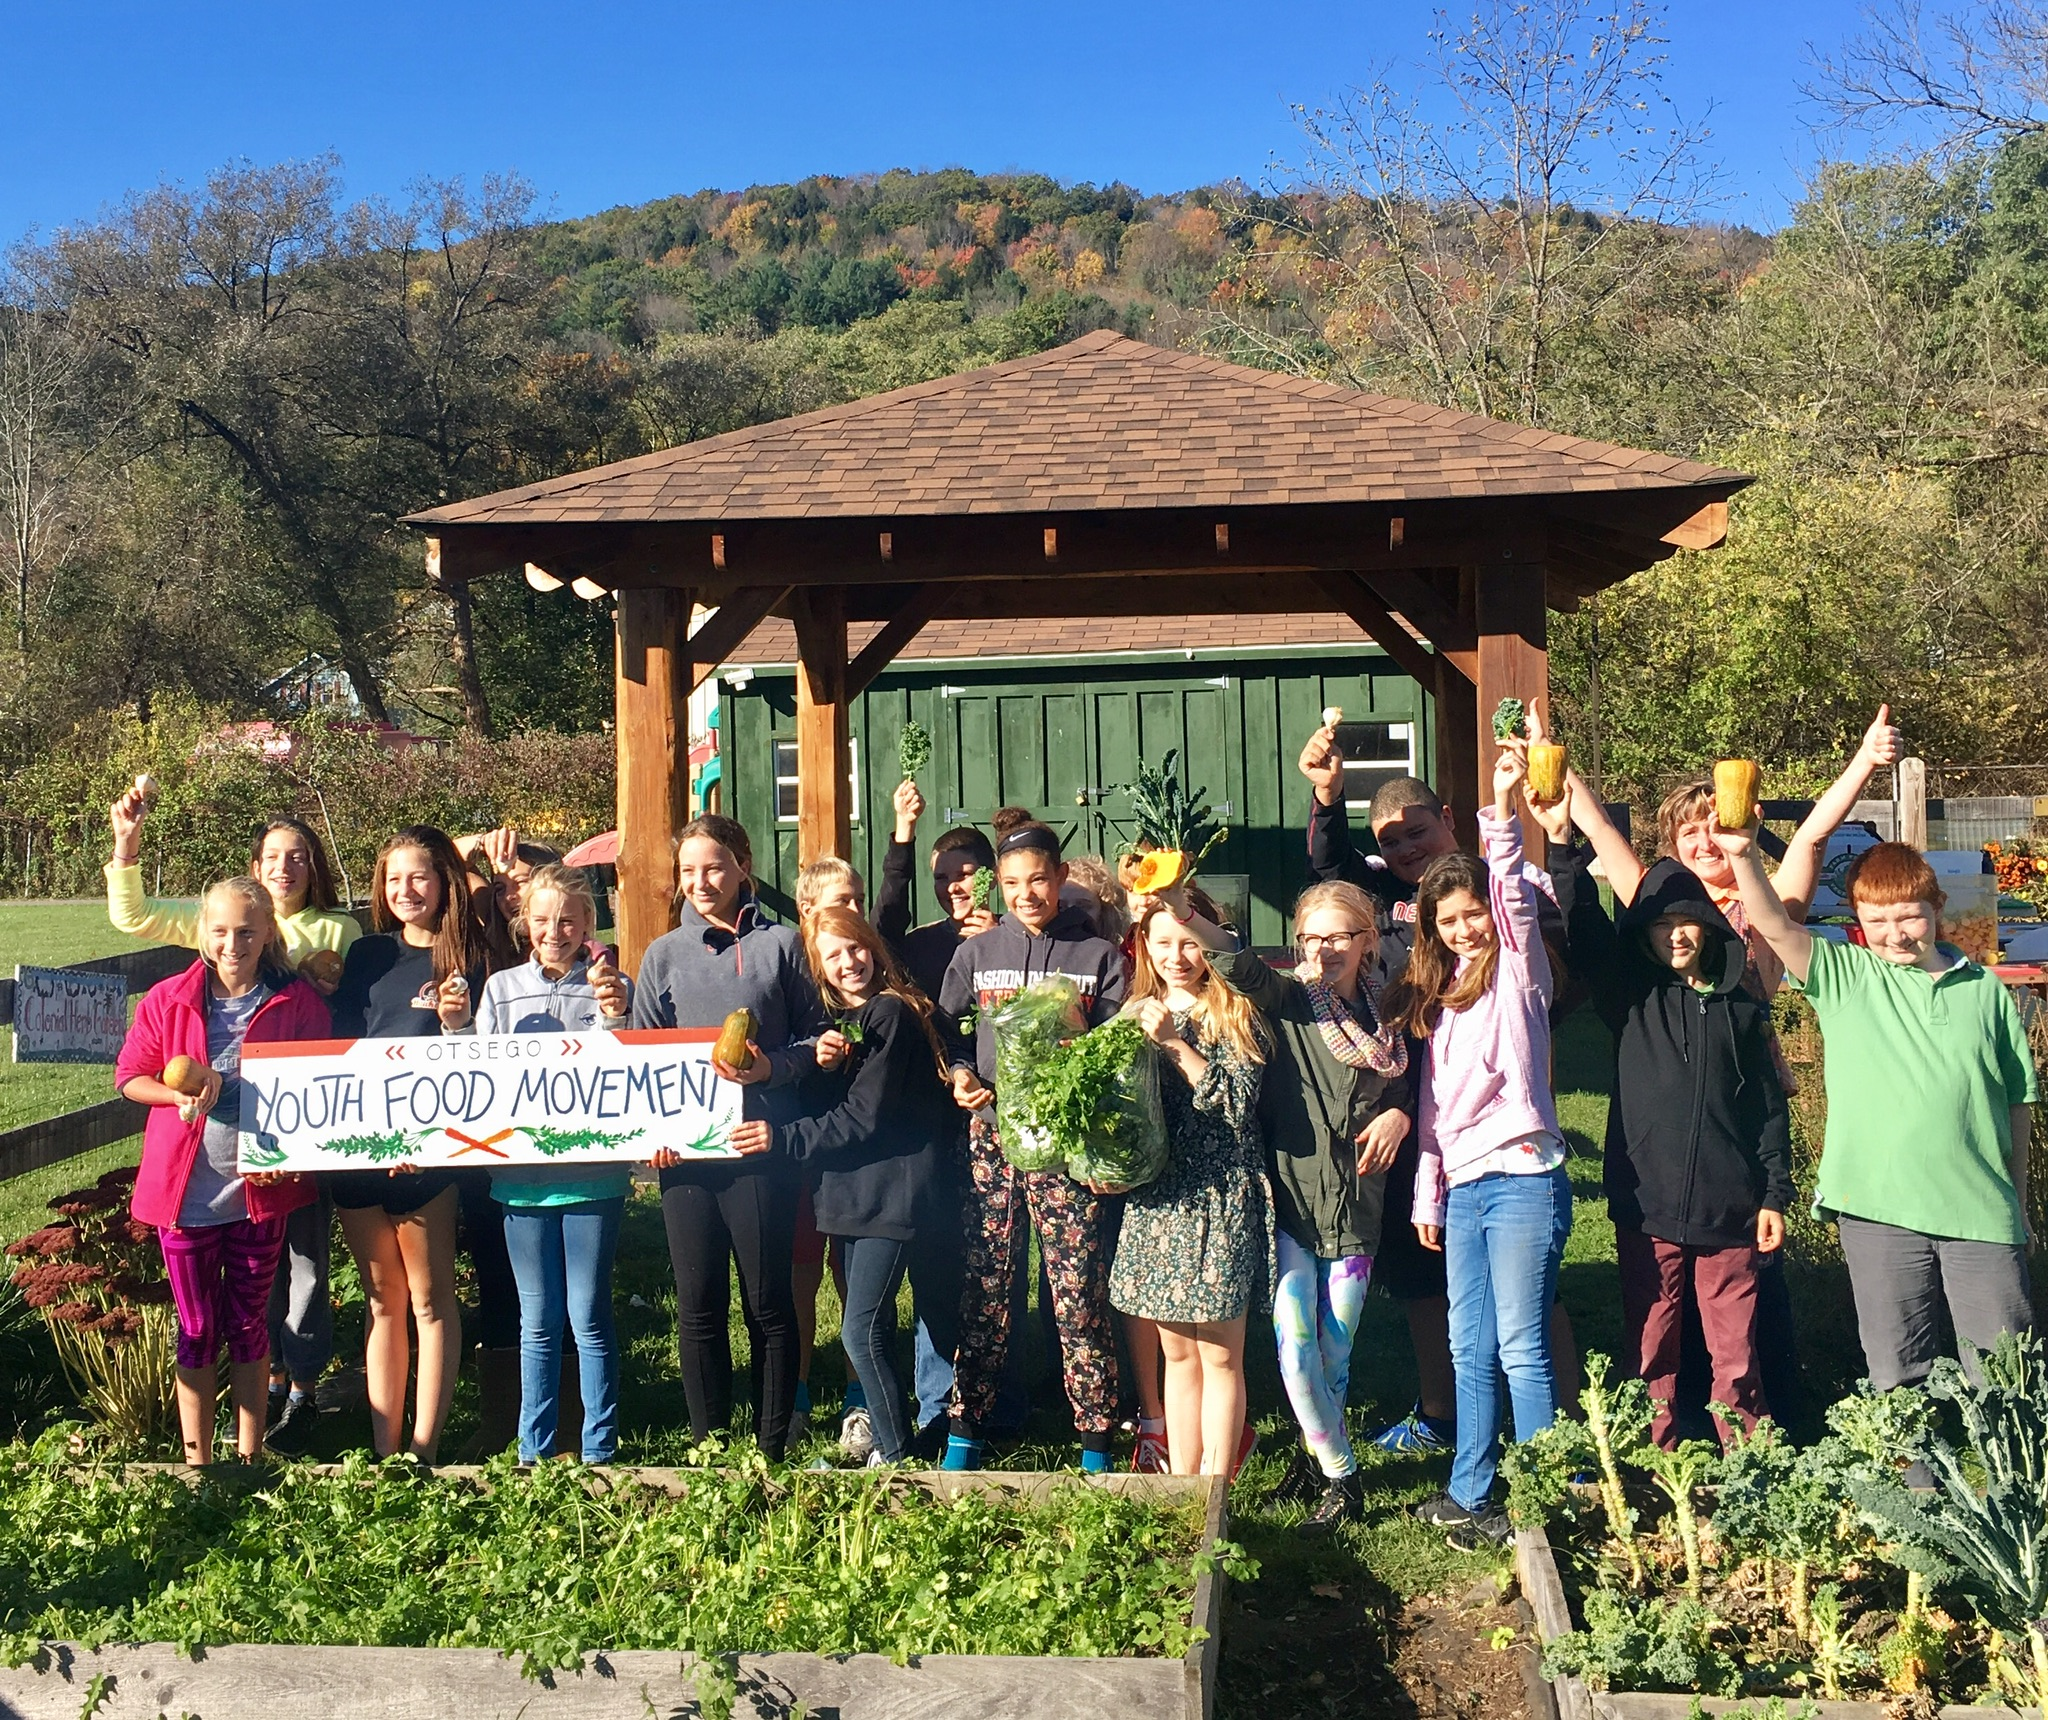 The Otsego Youth Food Movement - Our local chapter of this international movement has roots in Cooperstown schools and is open to all in the surrounding area. In kitchens & gardens we aim to encourage & mobilize responsible food choices, and take part in the public debate about current issues such as how to feed the world, what to do about food waste, and how to produce food as sustainably as possible?